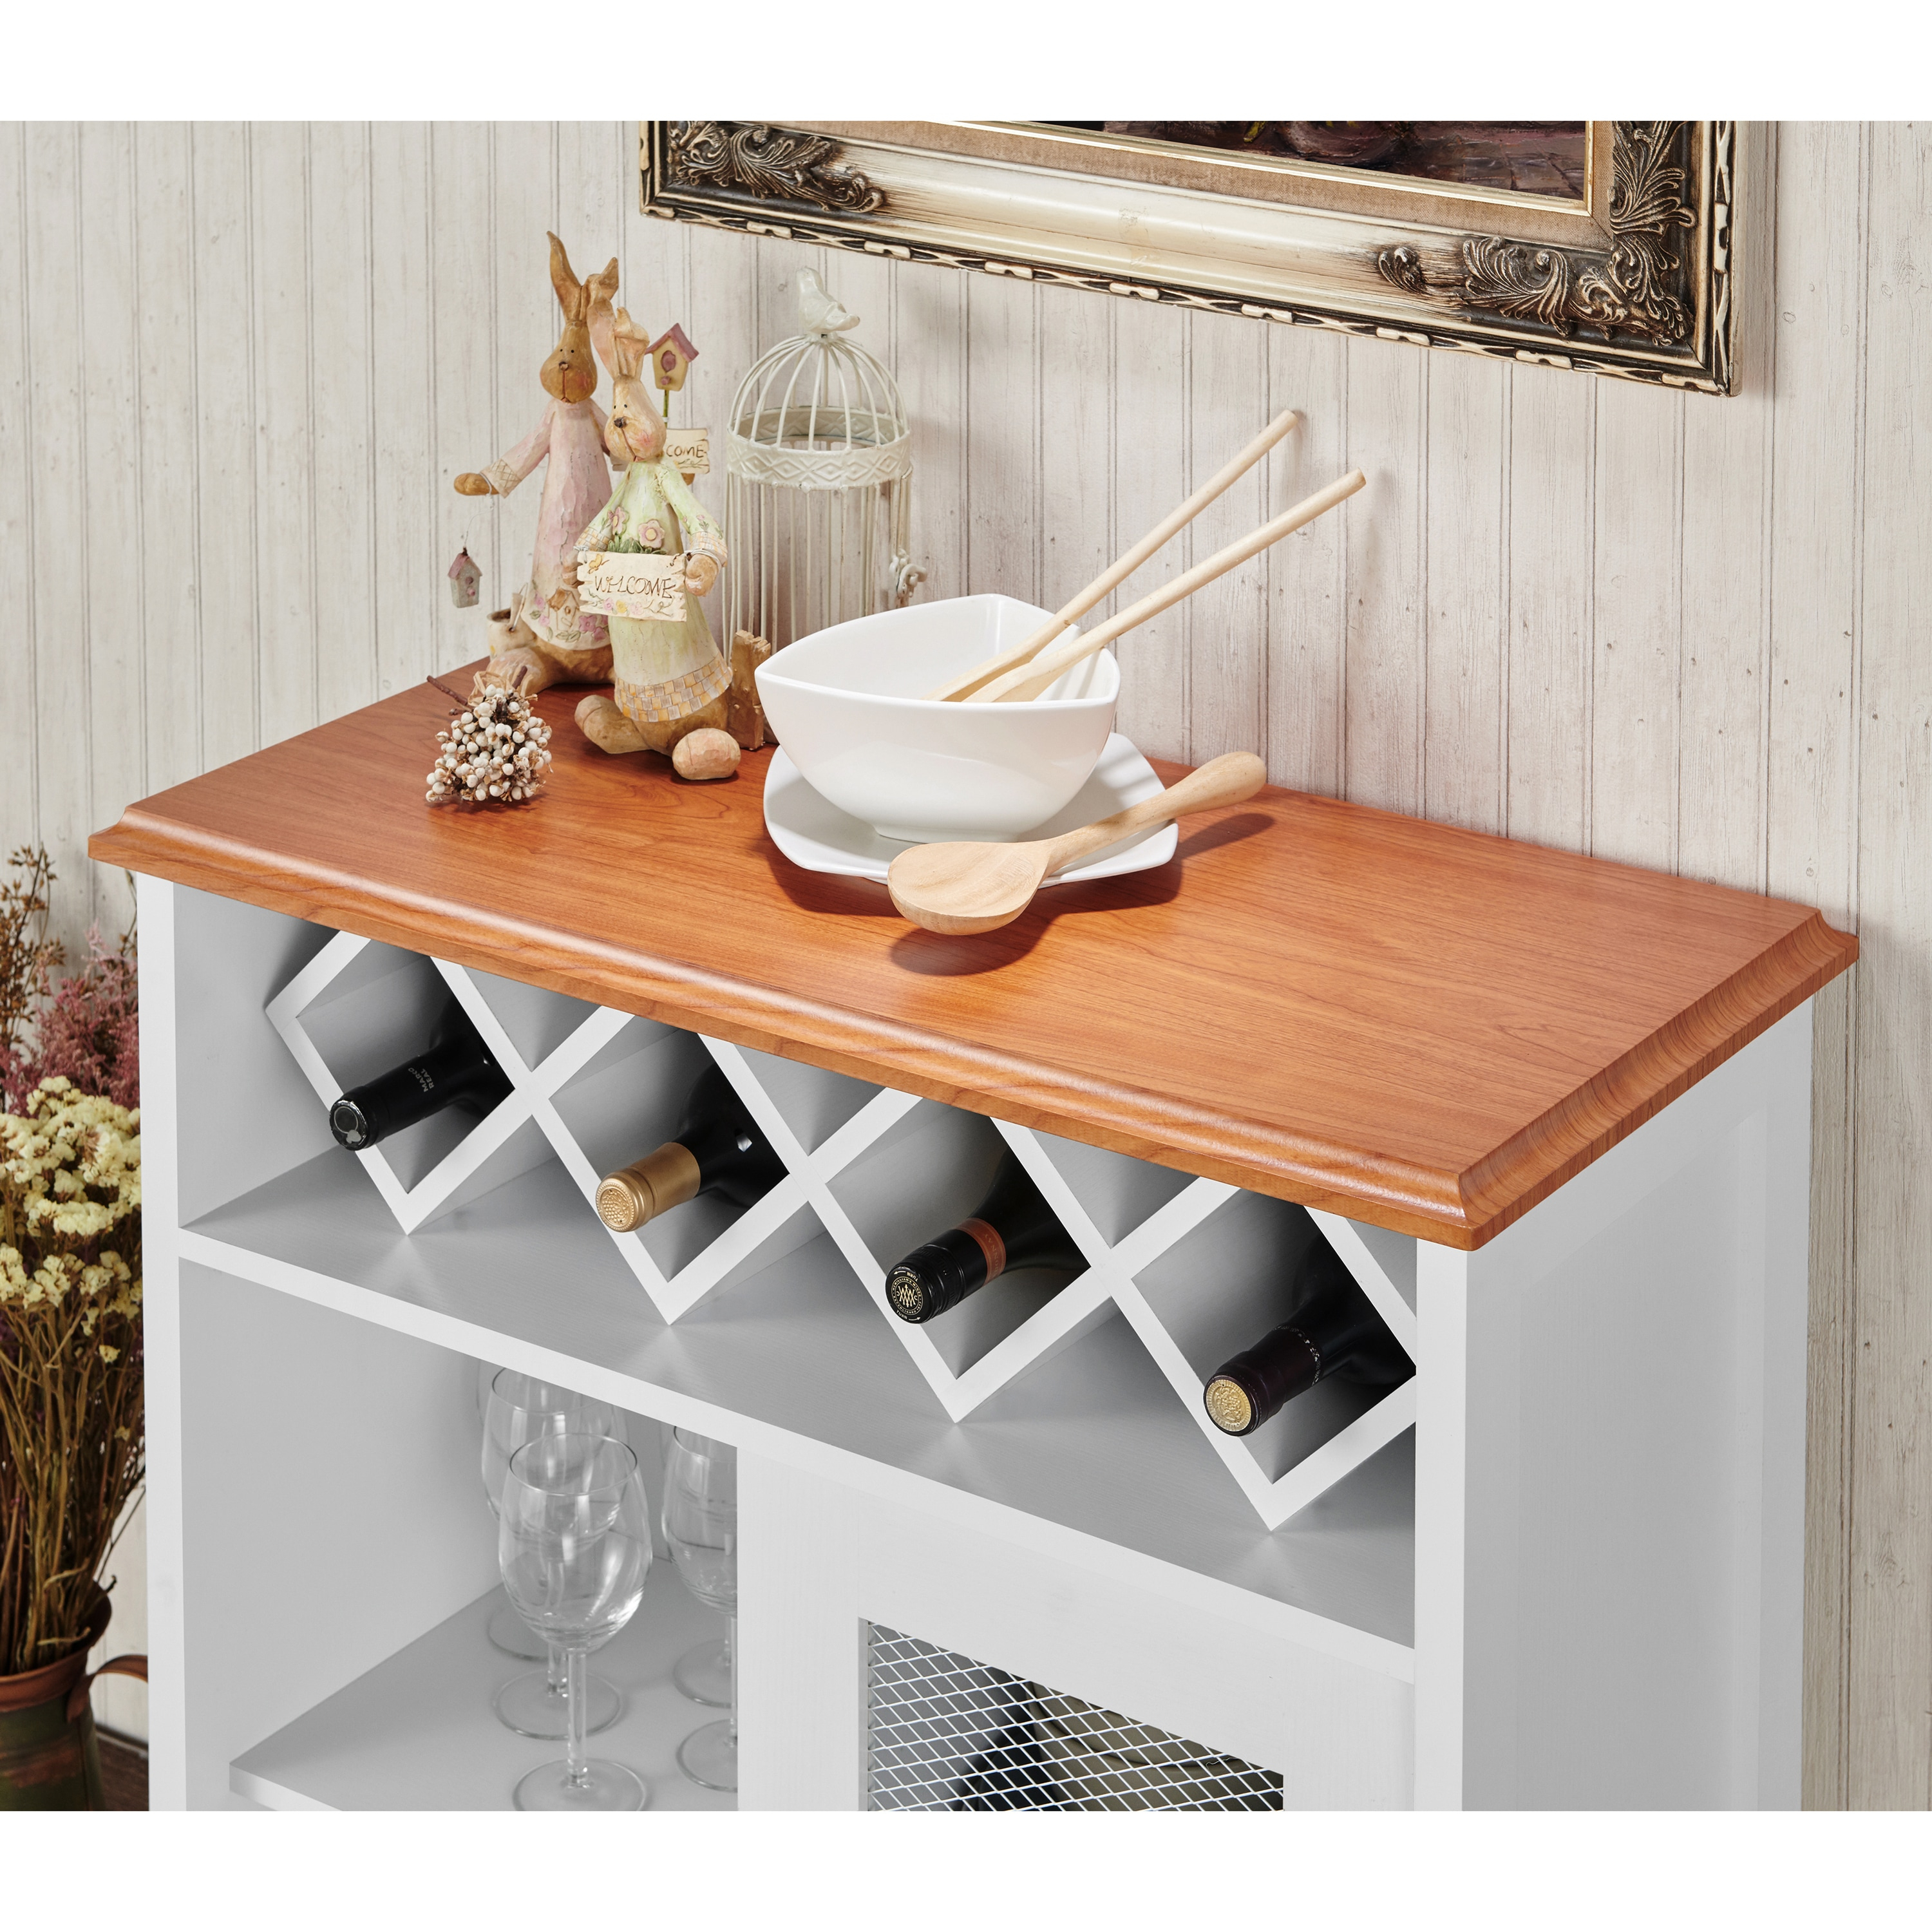 Furniture Of America Saucedo Rustic White Buffet With Wine Rack – N/a With Regard To Saucedo Rustic White Buffets (View 10 of 30)